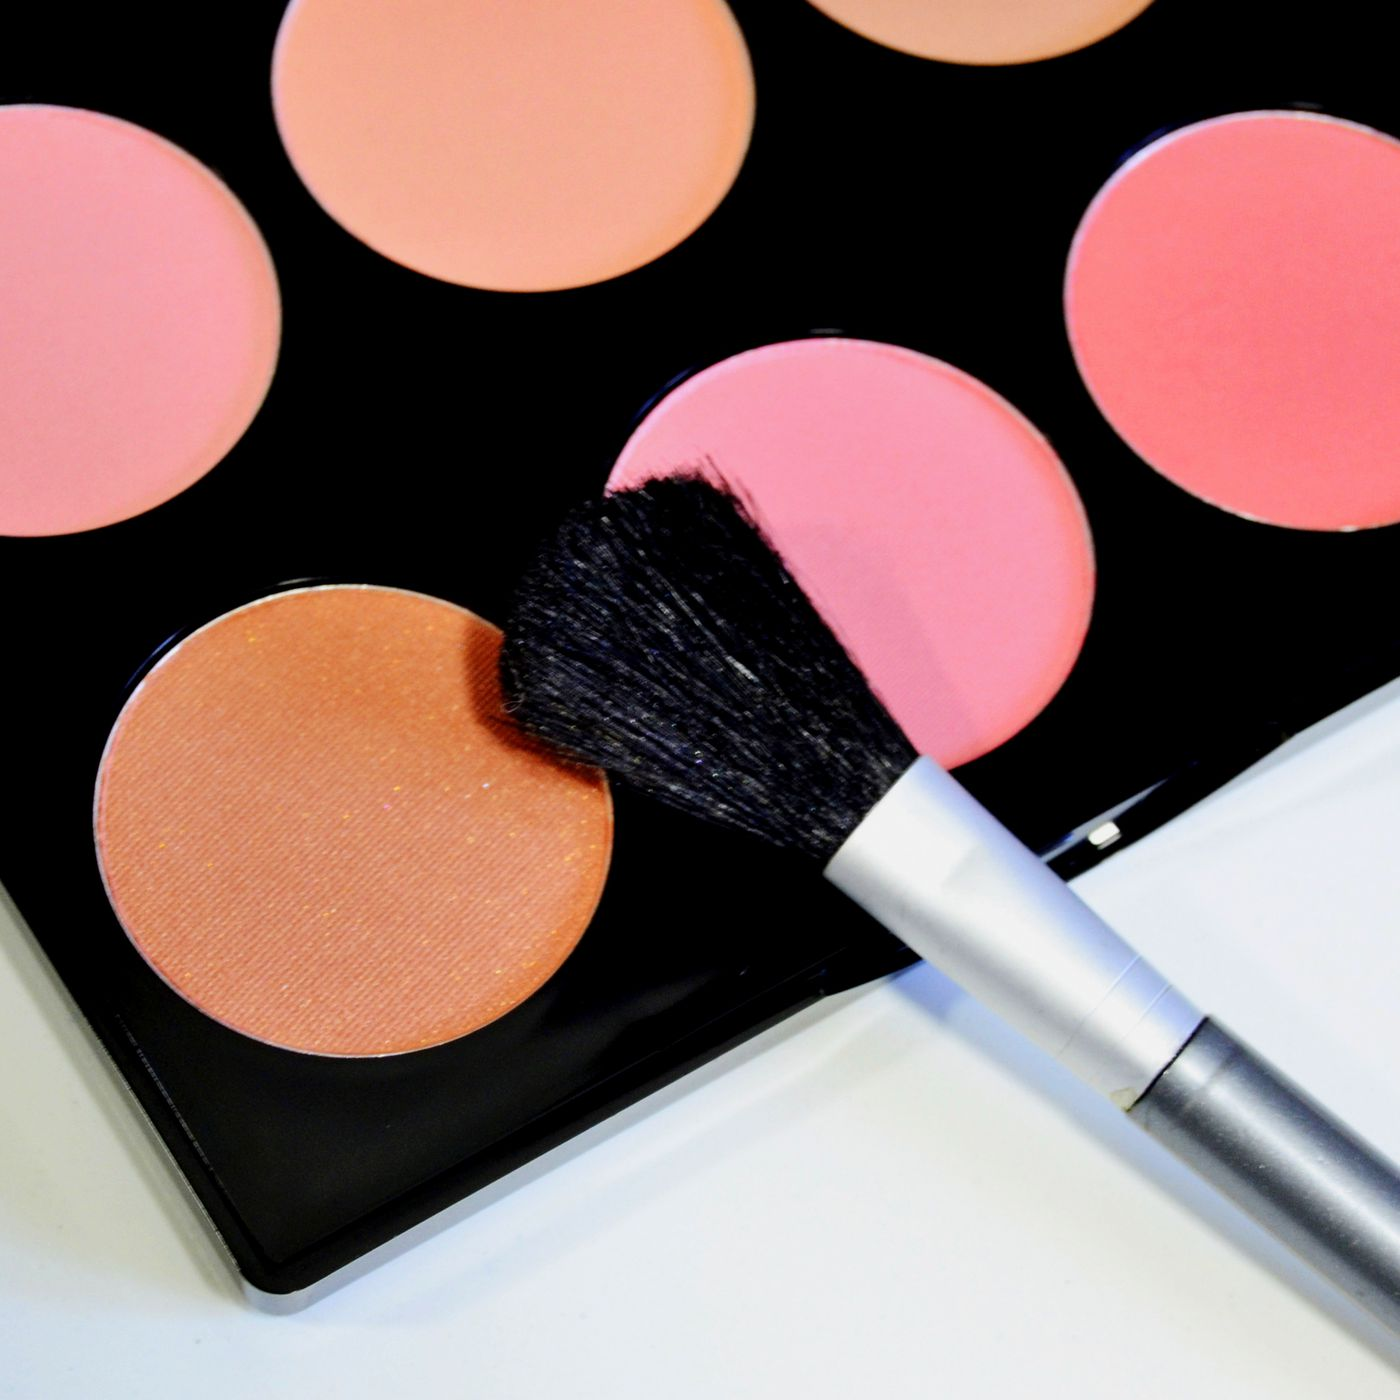 Your Beauty Products May Involve Human Rights Abuses Racked